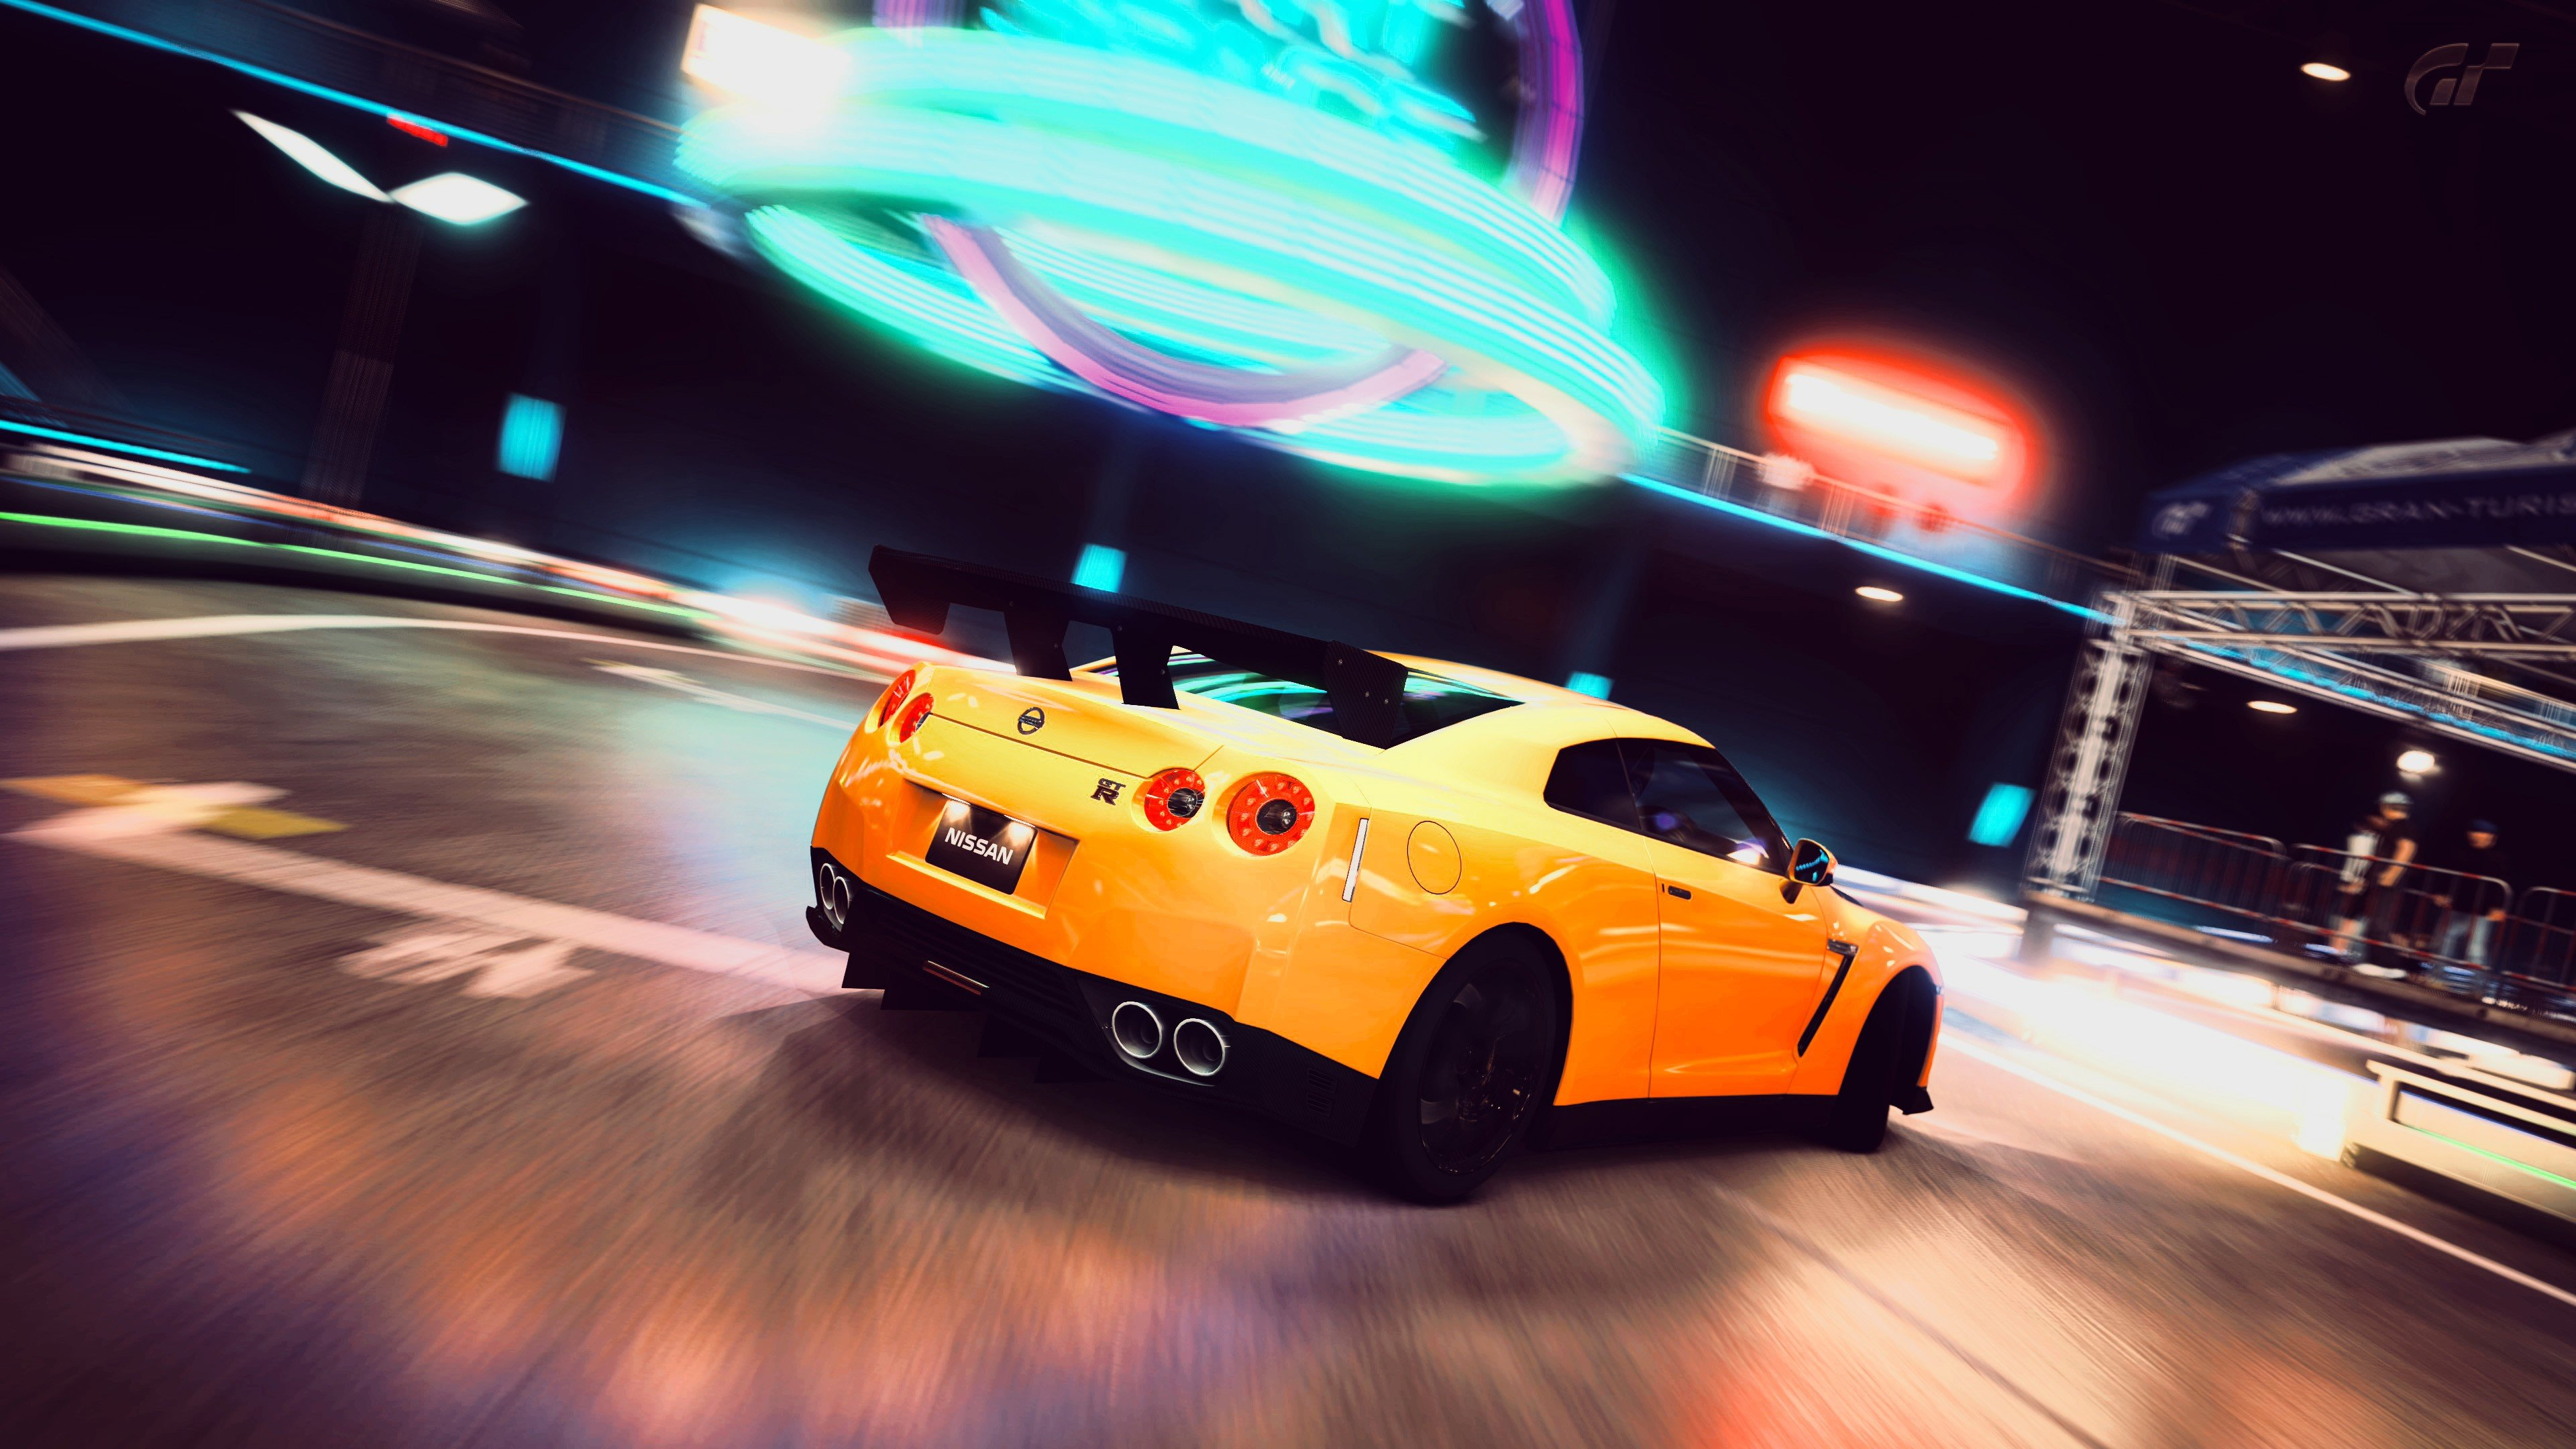 Cars Wallpapers 3840x2160 Ultra Hd 4k Desktop Backgrounds